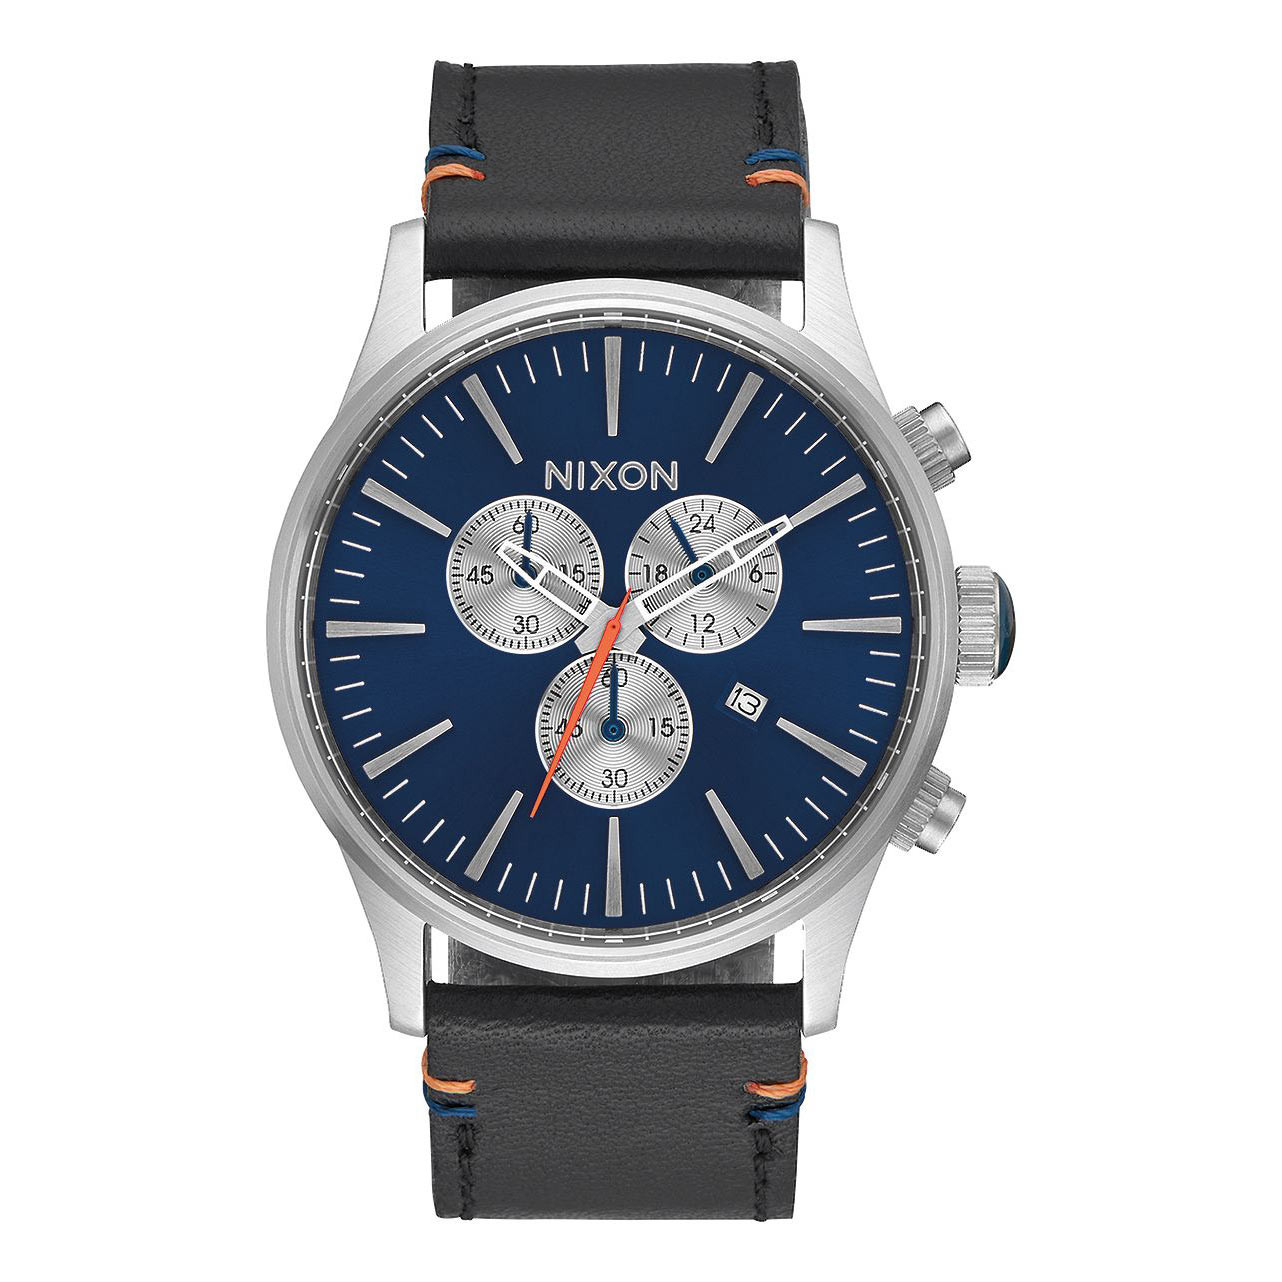 Hodinky Nixon Sentry Chrono Leather blue sunray